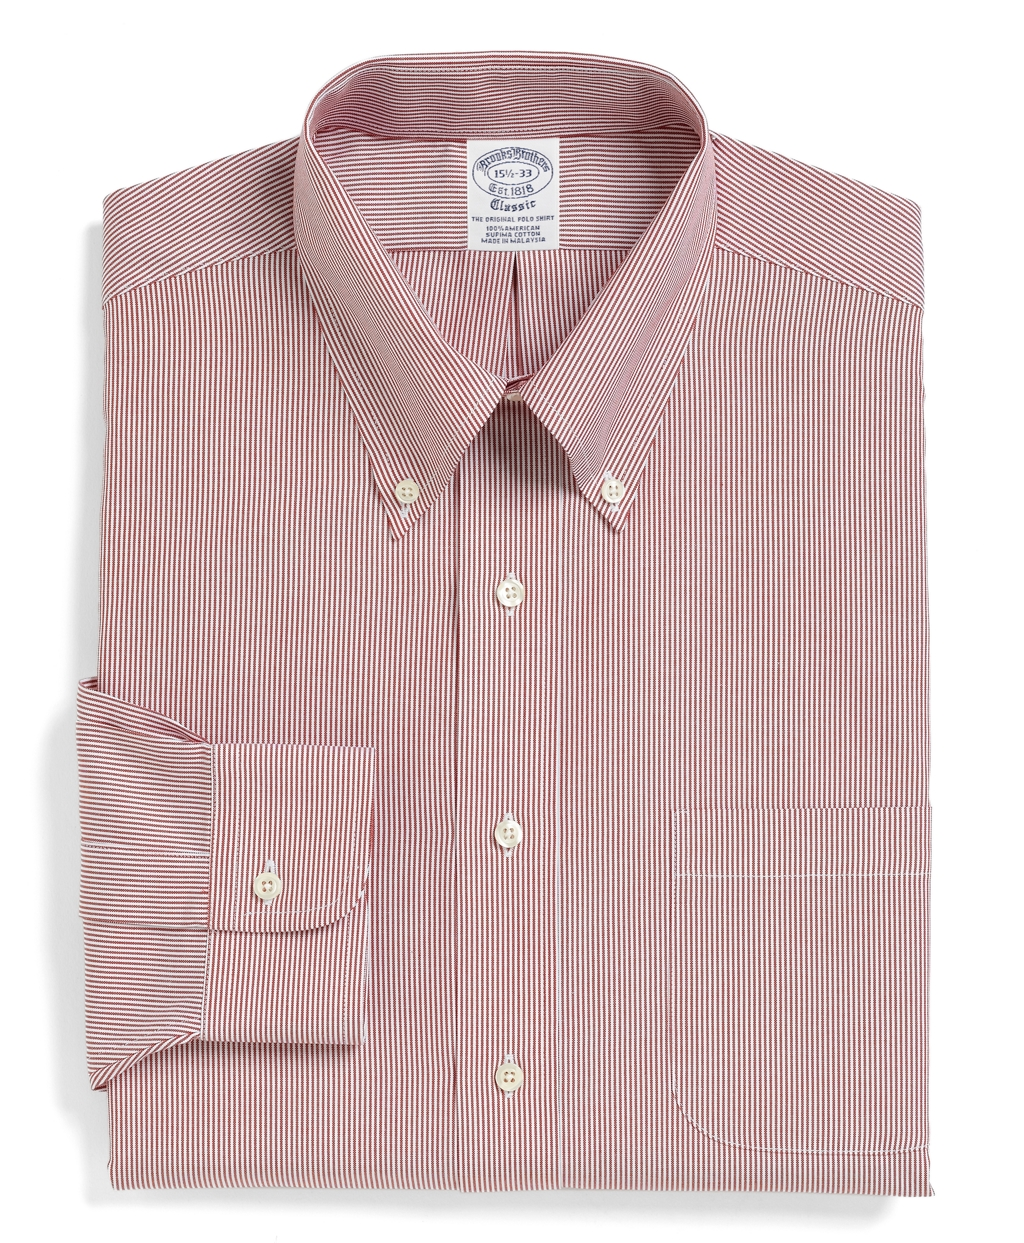 Brooks brothers traditional fit stripe dress shirt in red for Brooks brothers dress shirt fit